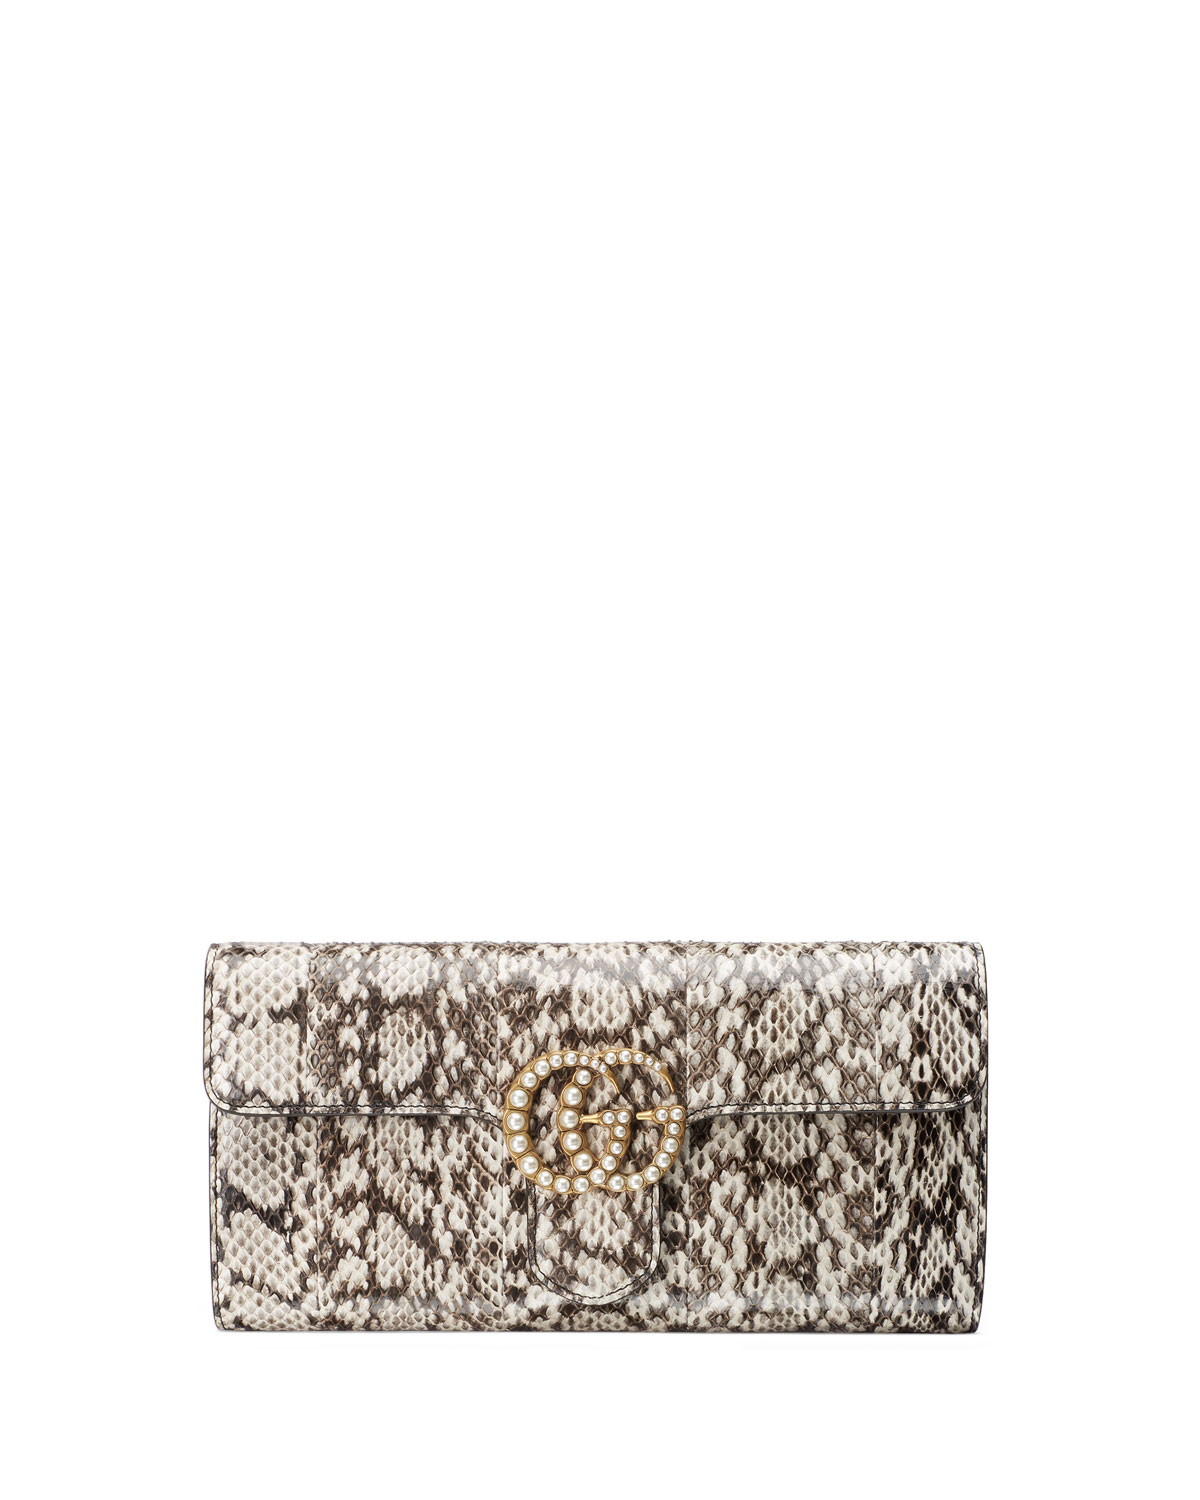 fbdee7c08c5f23 Gucci GG Marmont Pearly Snakeskin Clutch Bag, Natural   Neiman Marcus